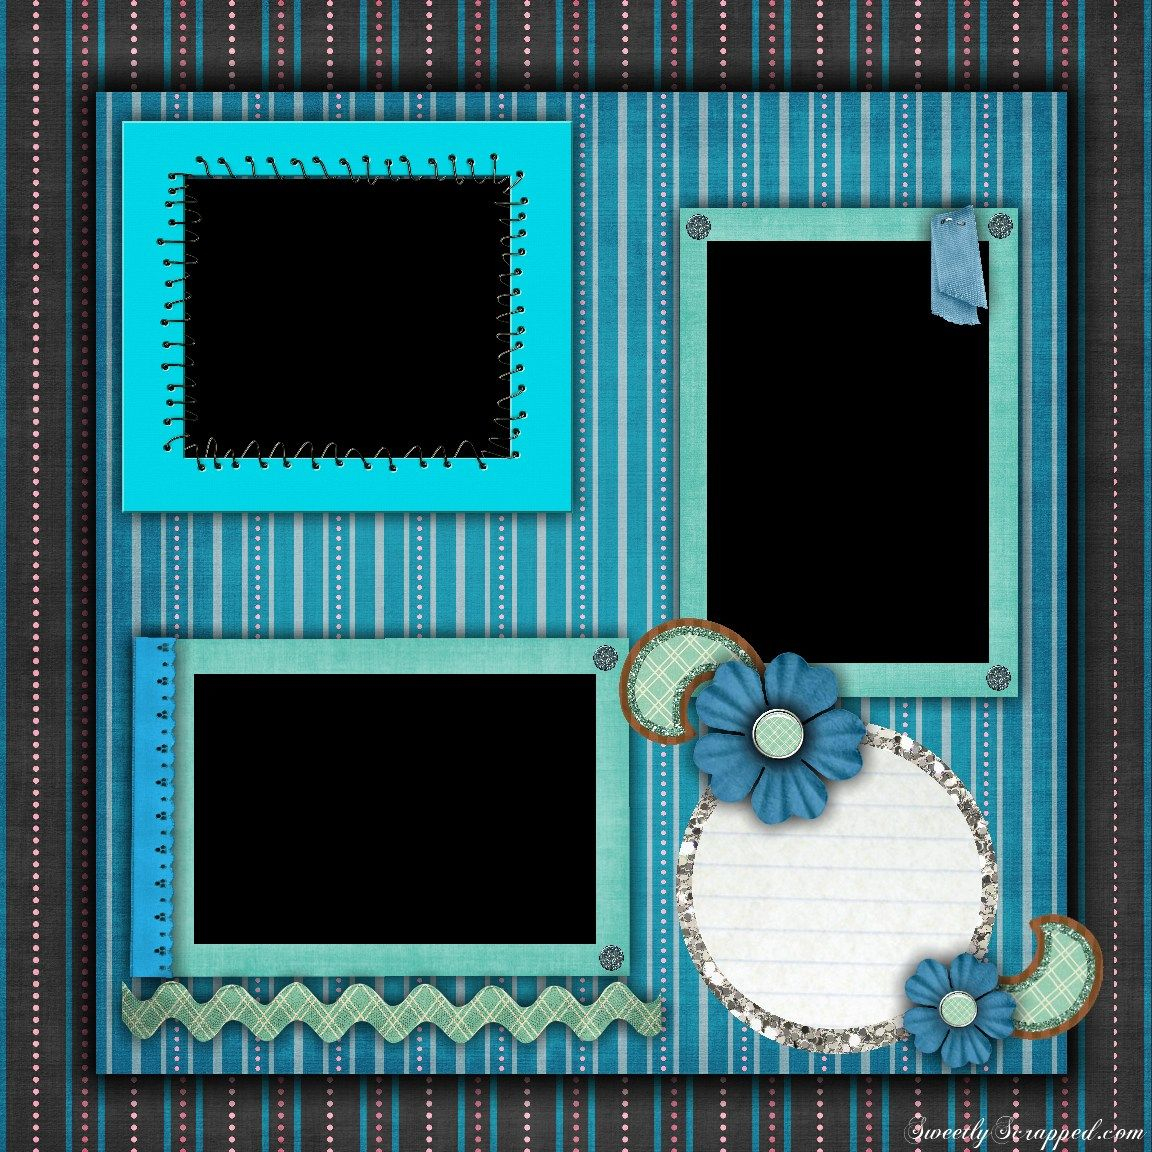 Scrapbooking Layouts Ideas Templates Free Printable Scrapbook Layout - Free Printable Scrapbook Page Designs